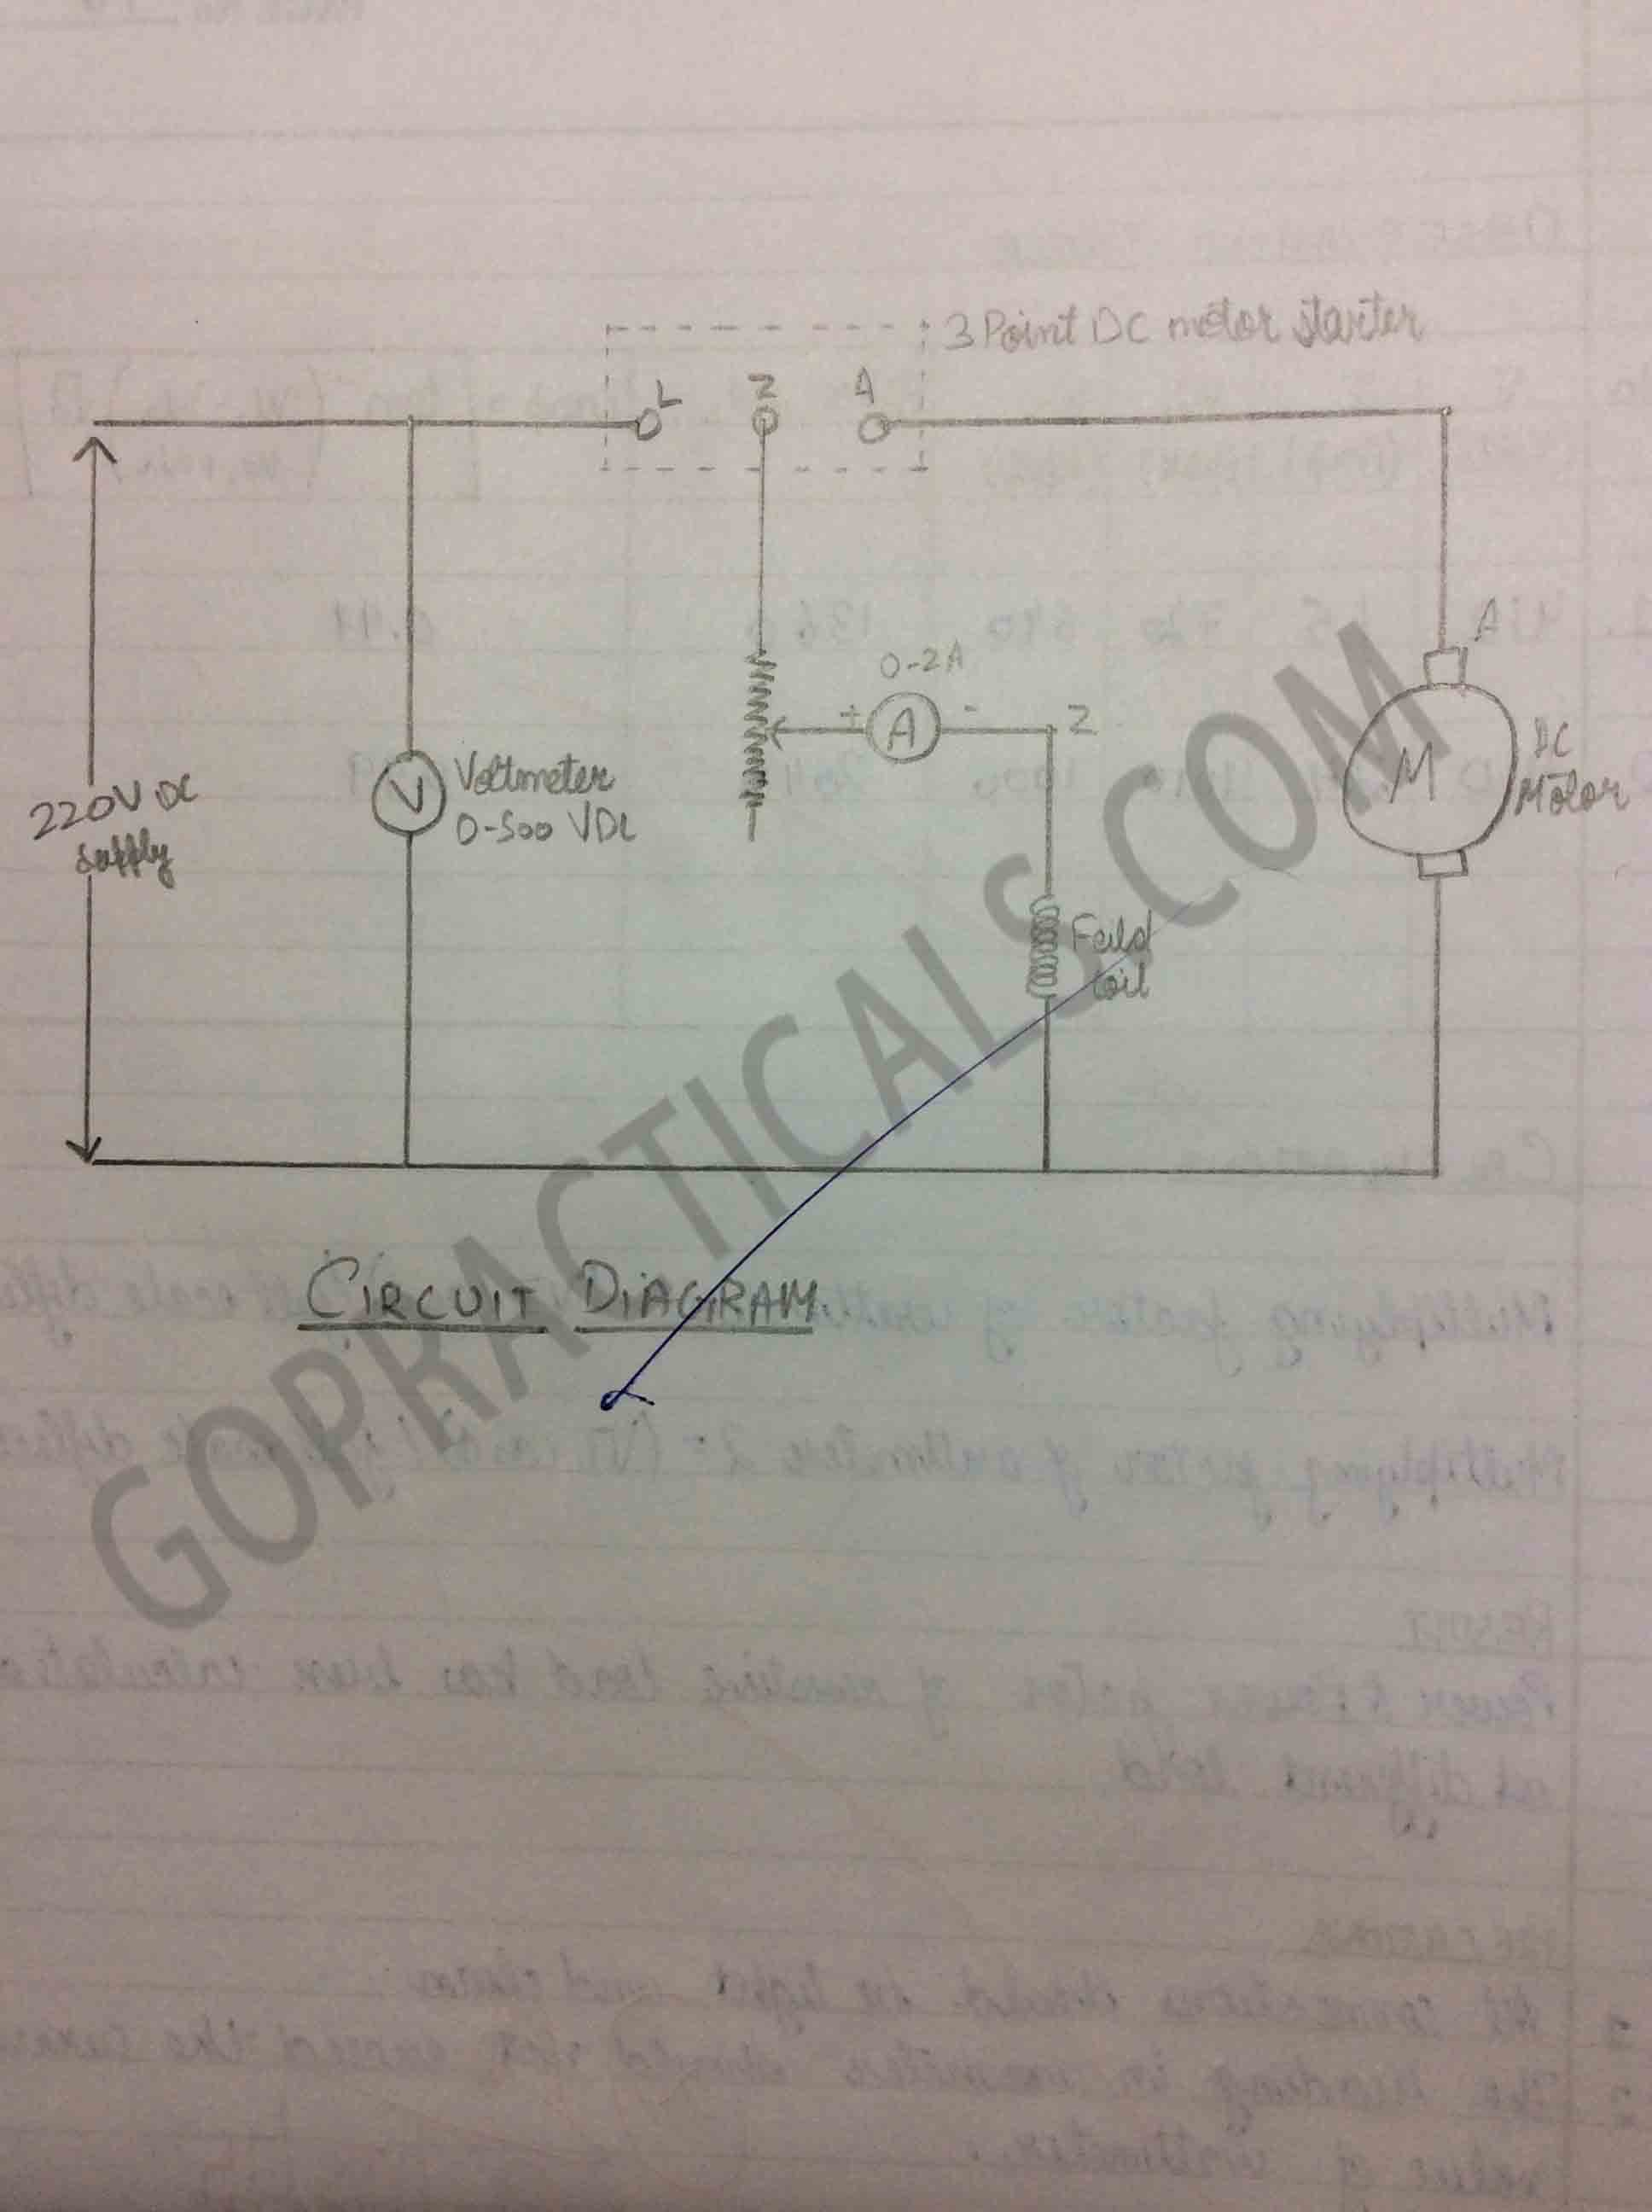 Speed Control Of A Dc Shunt Motor By Field Method Wiring Diagram For Series Wound 2